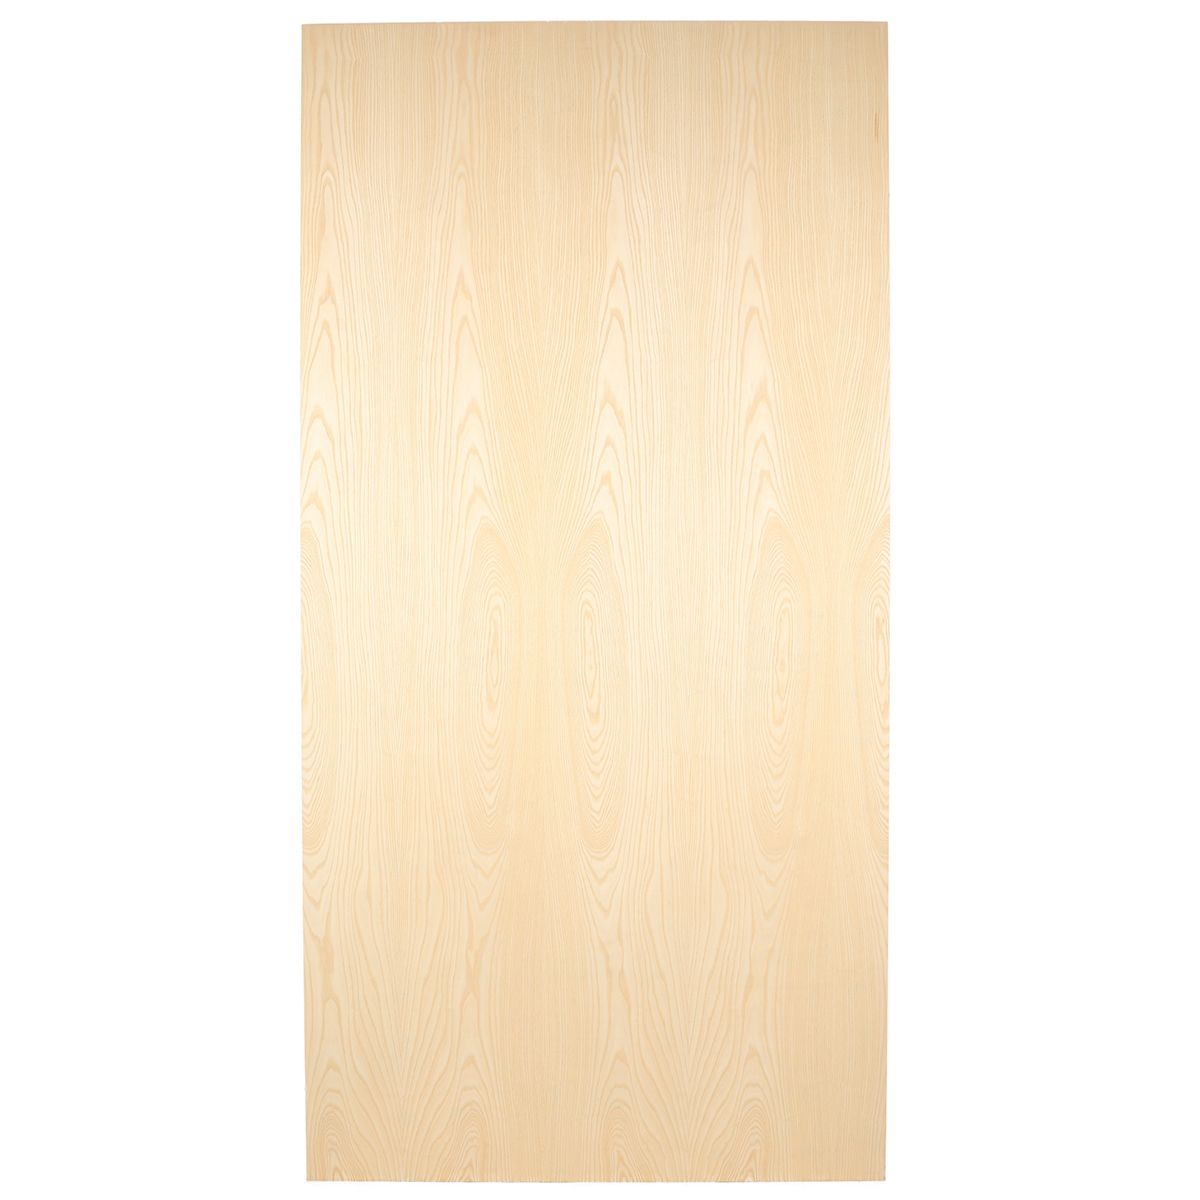 3 4 Ash 4 X8 Plywood G2s Made In Usa Plywood Wood Wall Wall Finishes